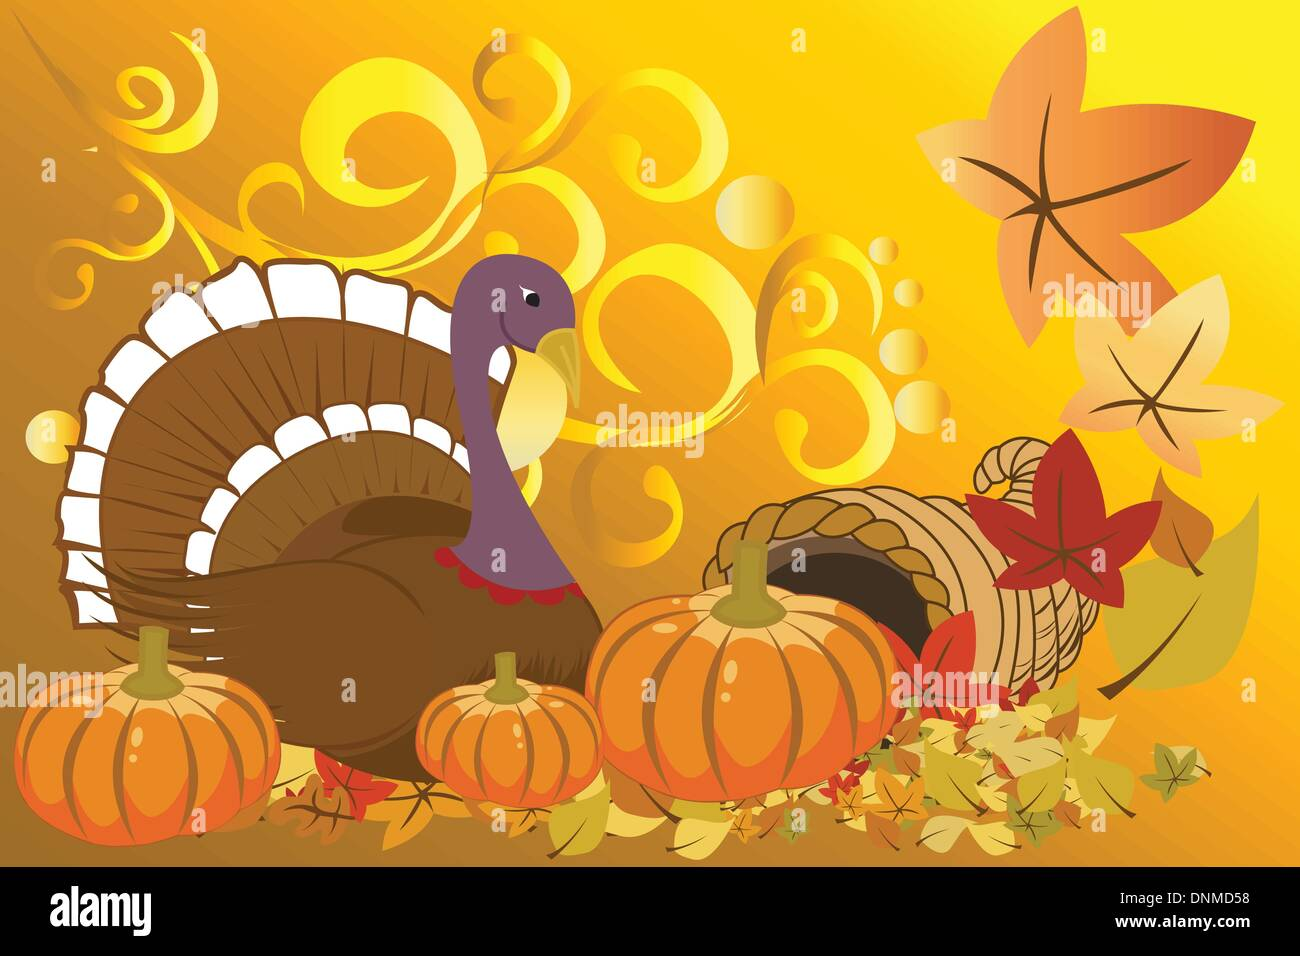 Vector illustration of turkey and pumpkins for Thanksgiving celebration - Stock Vector